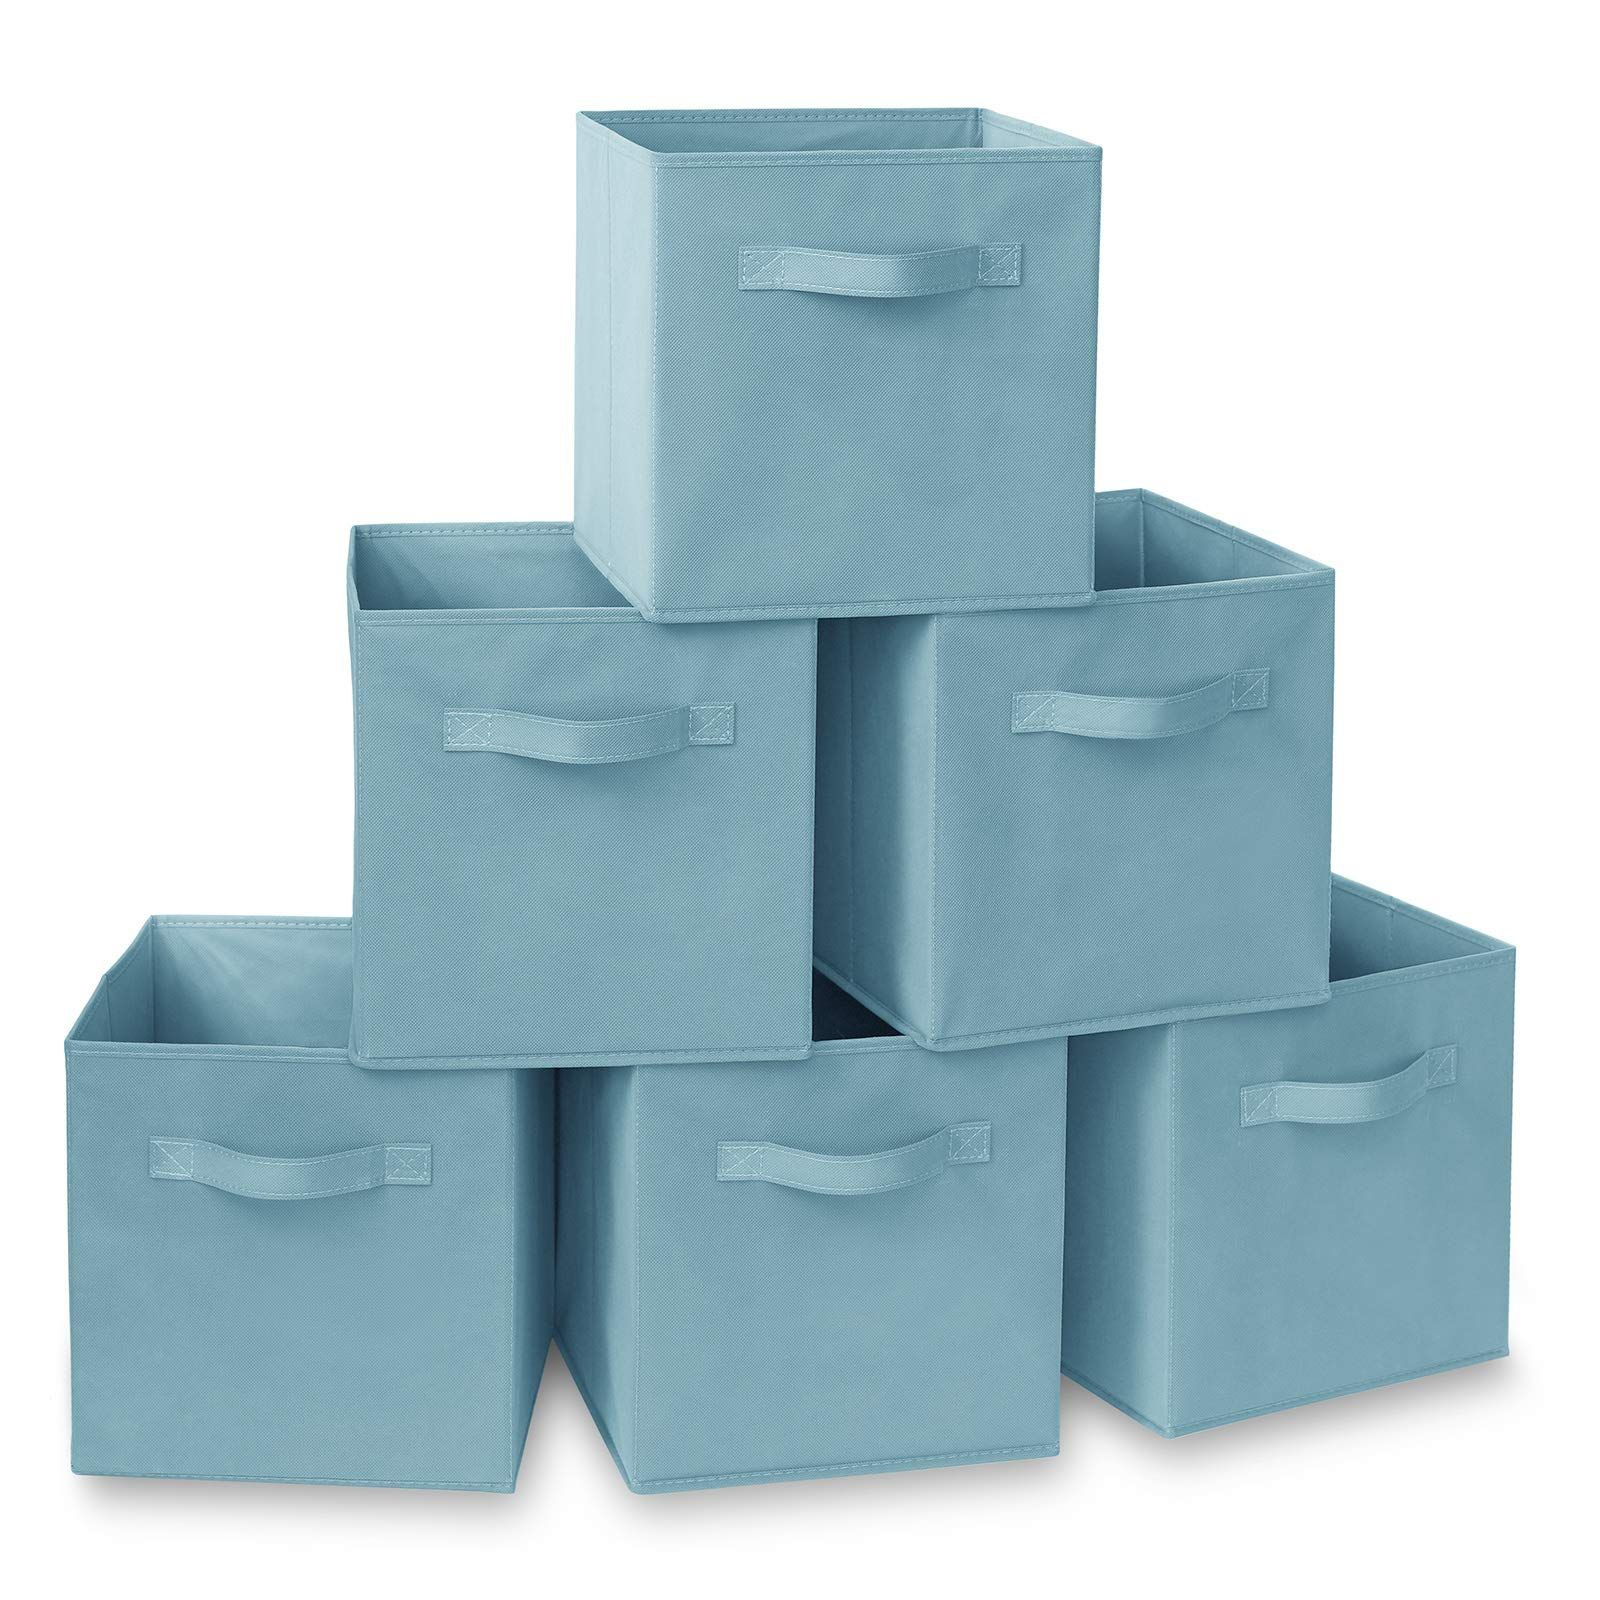 Casafield Set Of 6 Collapsible Fabric Cube Storage Bins Baby Blue 11 Foldable Cloth Baskets For Shelves In 2020 Cube Storage Bins Storage Bins Baskets For Shelves